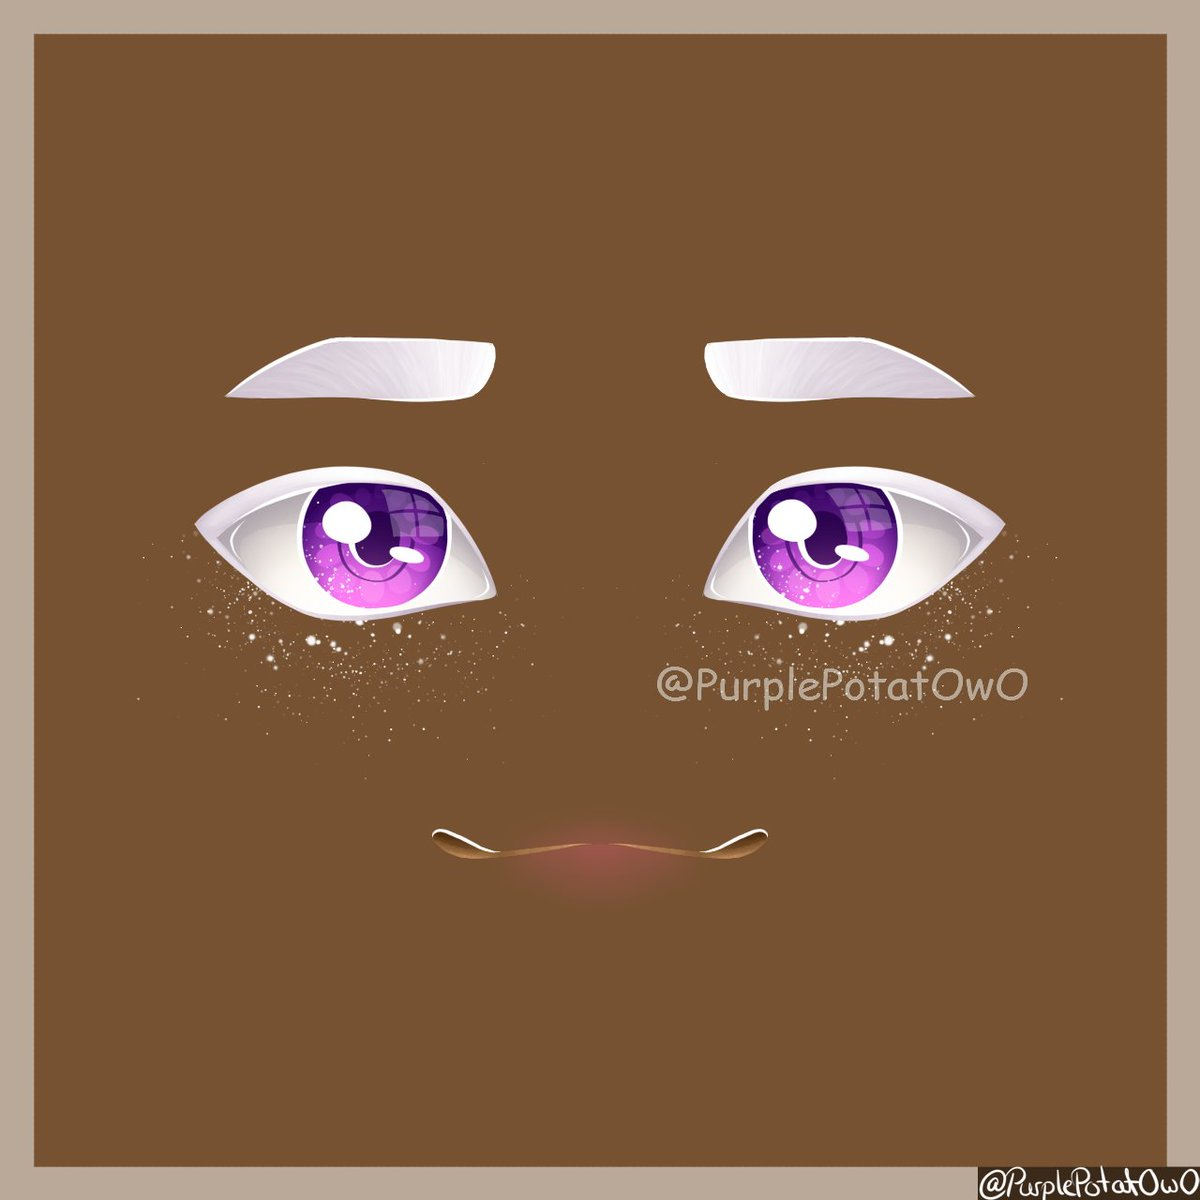 Roblox Female Face Decals ℙ𝕚𝕡𝕖𝕣 On Twitter Even Though They Re Albino Face